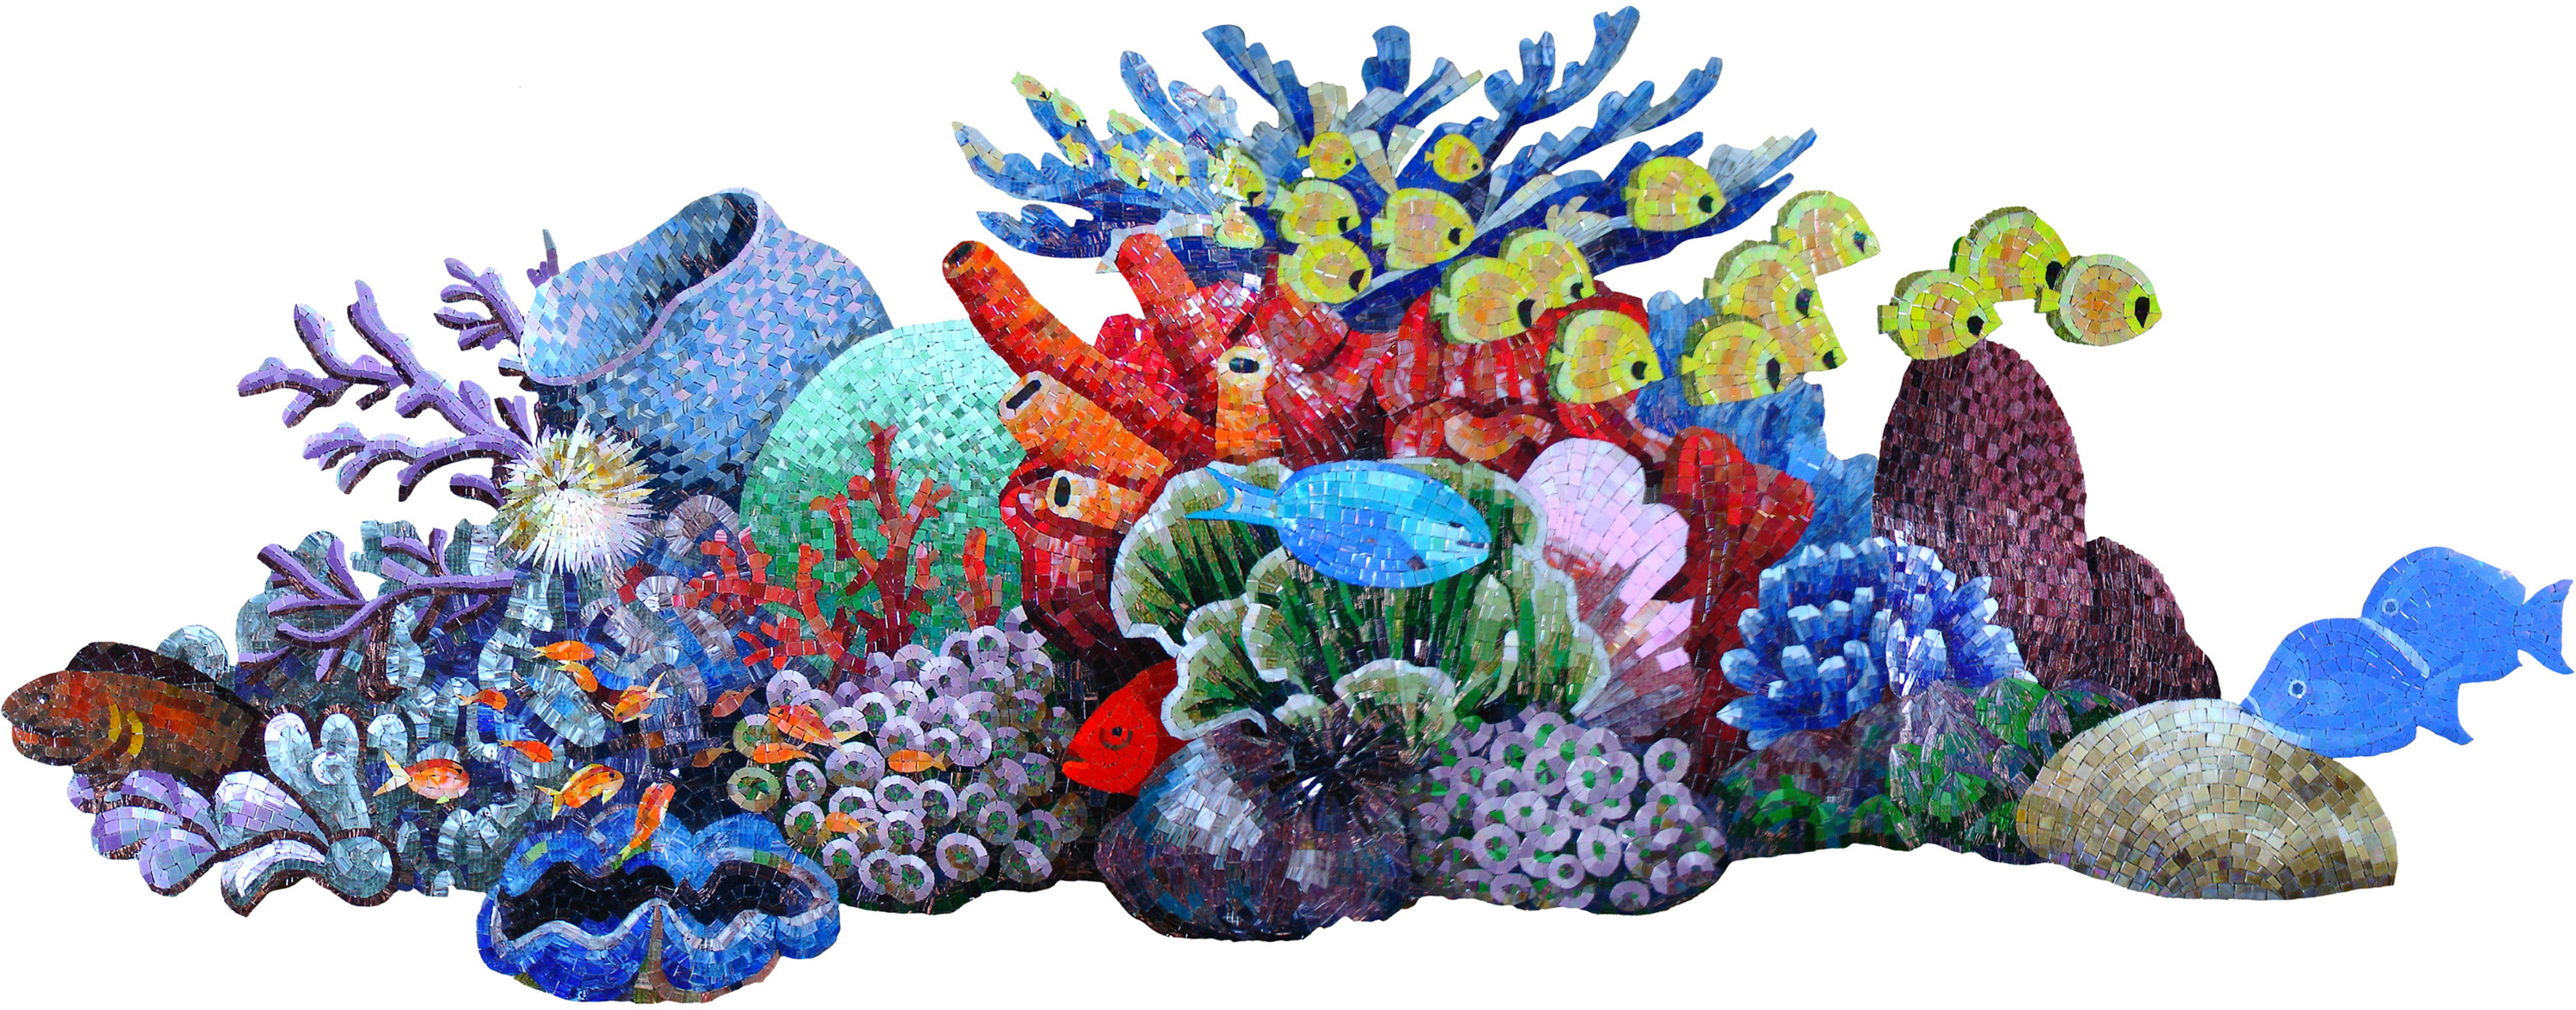 Big Tropical Coral Reef Scene Glass Mosaic Swim Pool Tile